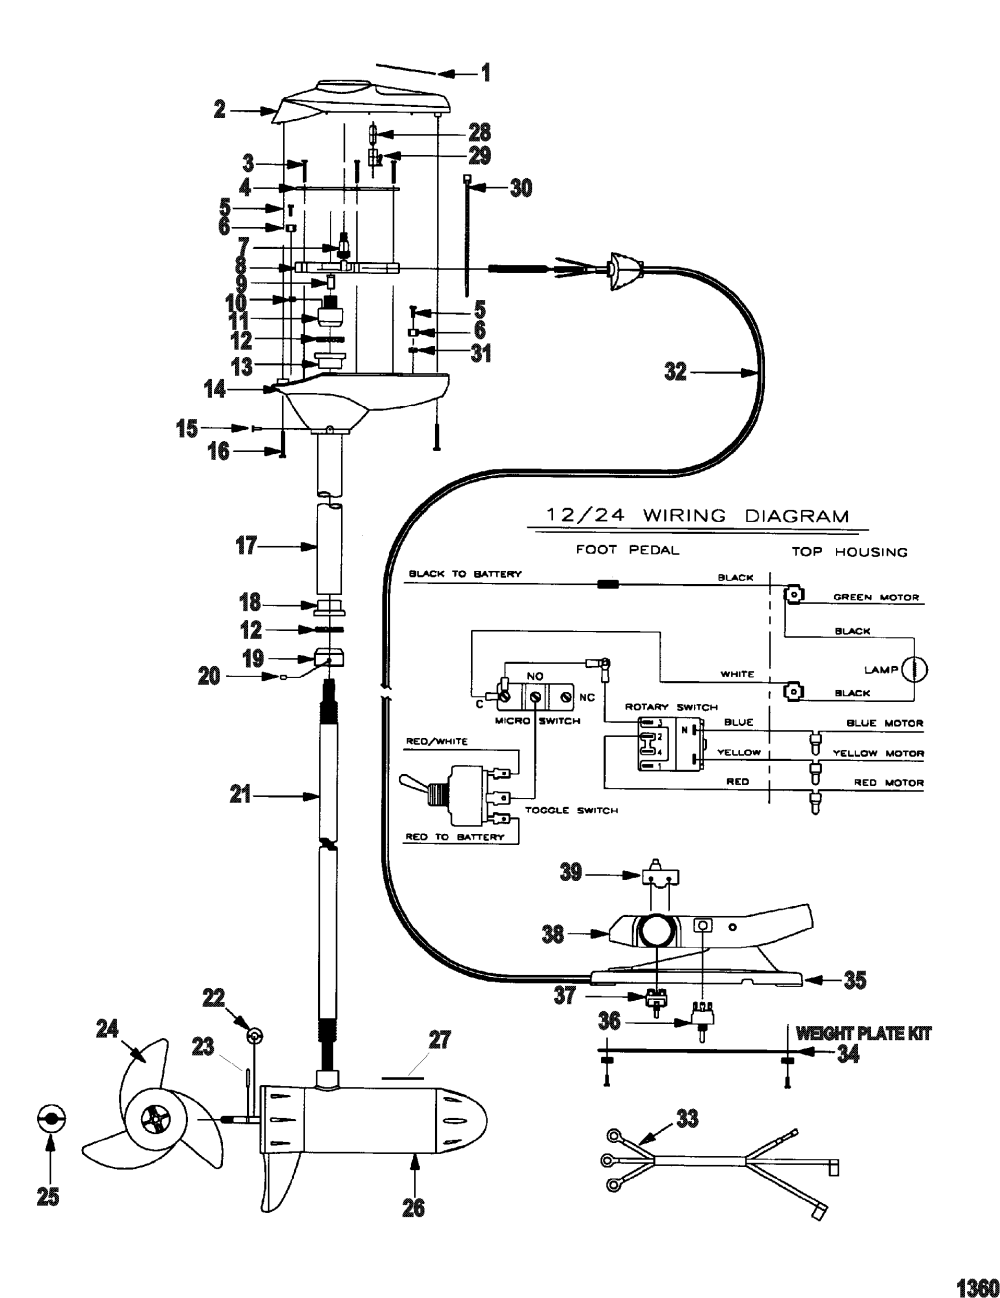 medium resolution of motorguide 24 volt trolling motor wiring diagram 48 12 24 trolling motor wiring diagram motorguide trolling